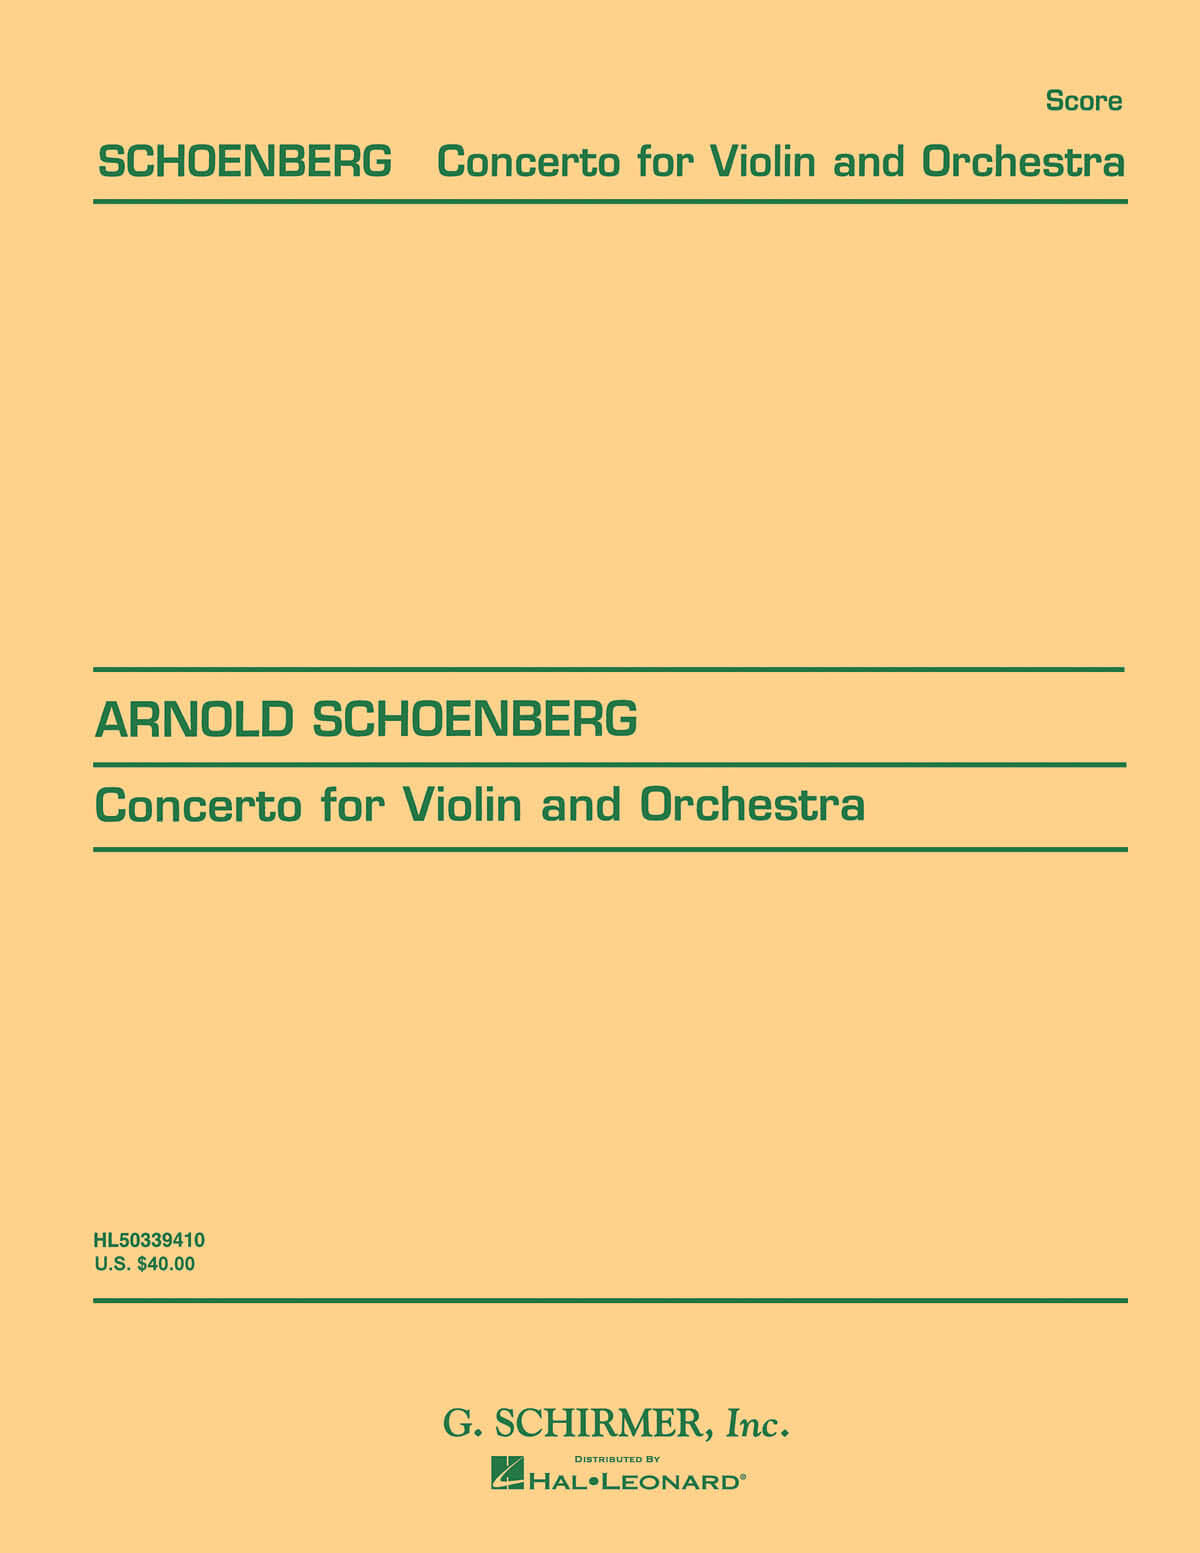 Concerto for Violin and Orchestra, Op. 36